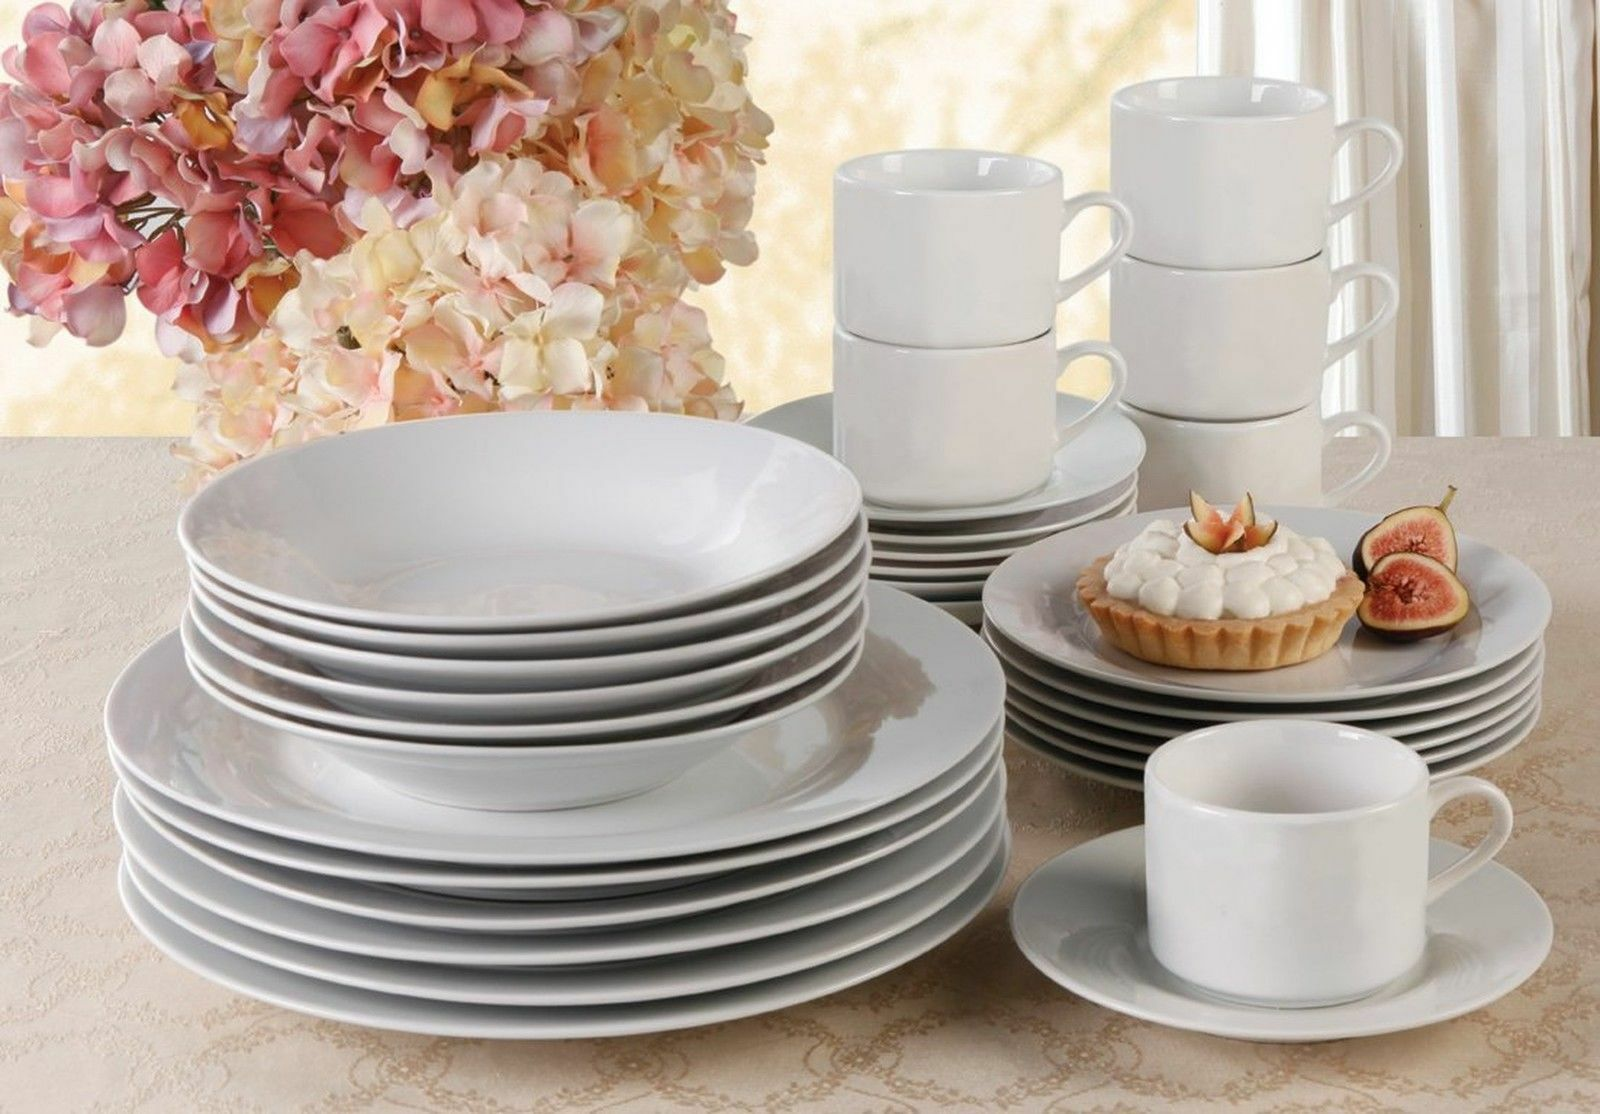 & Gibson Rosendal 30-piece Expanded Dinnerware Set Service for 6 | eBay